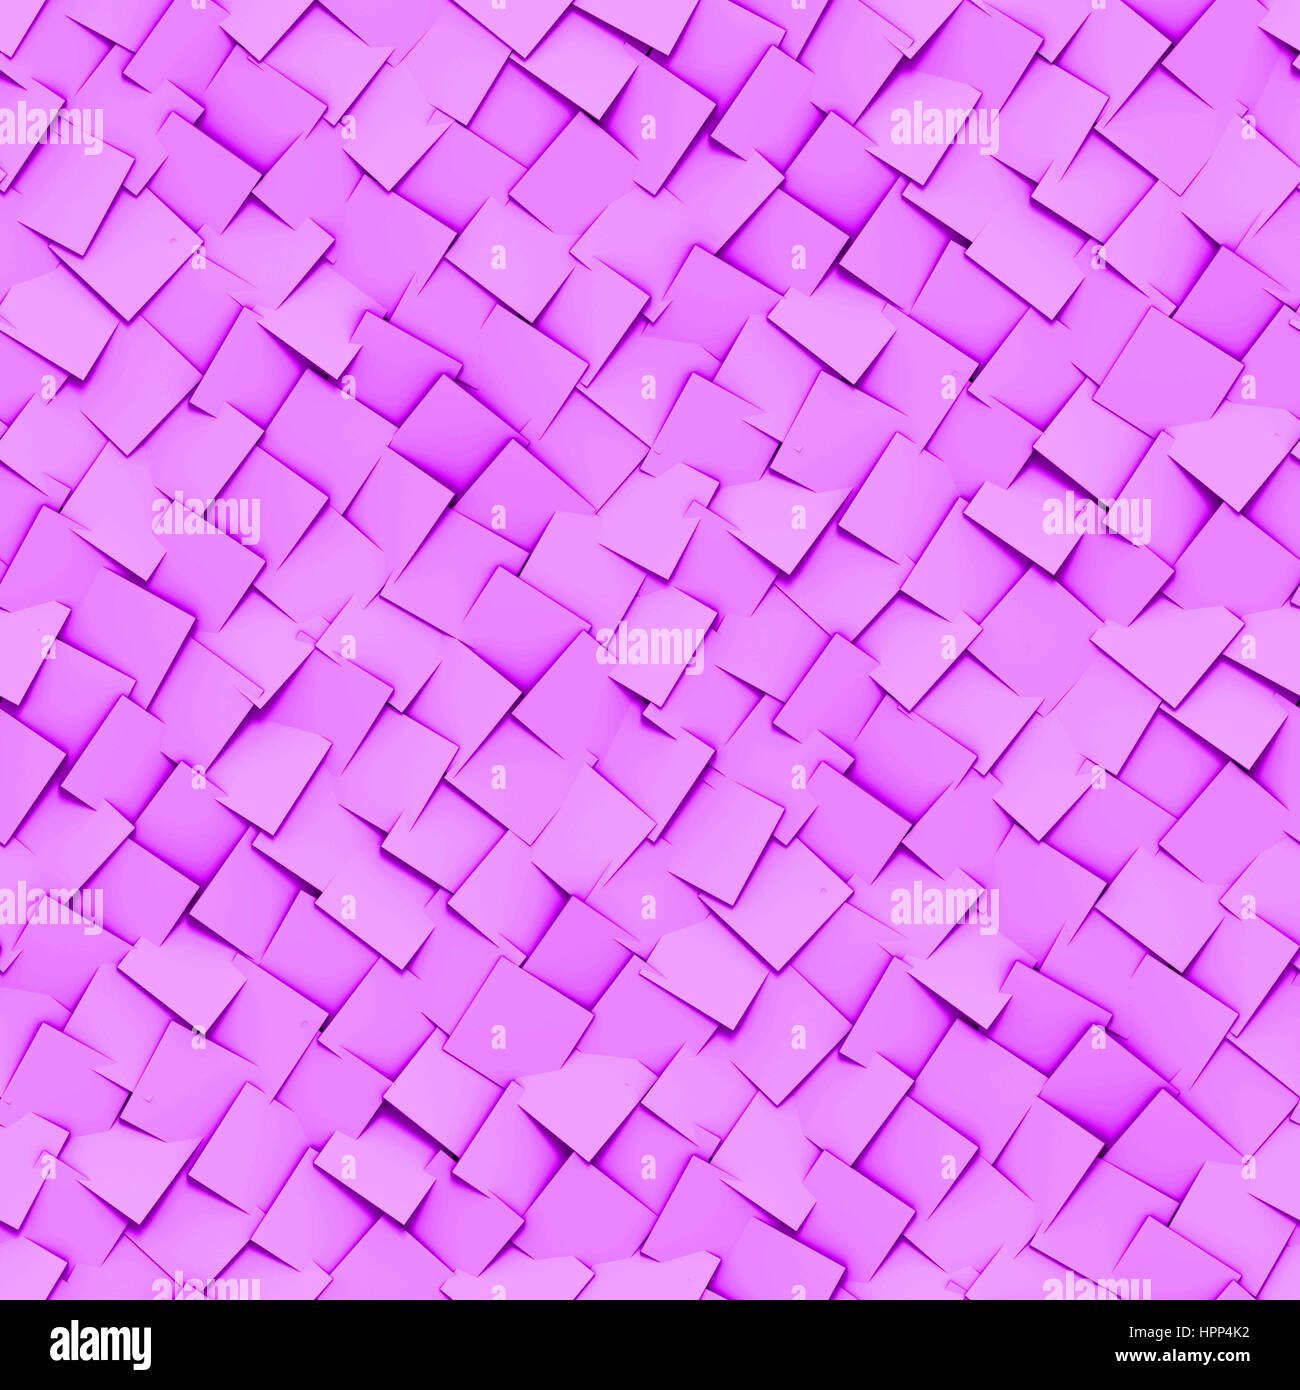 seamless background made of diagonal arranged cubes in shades of purple (3d illustration) Stock Photo